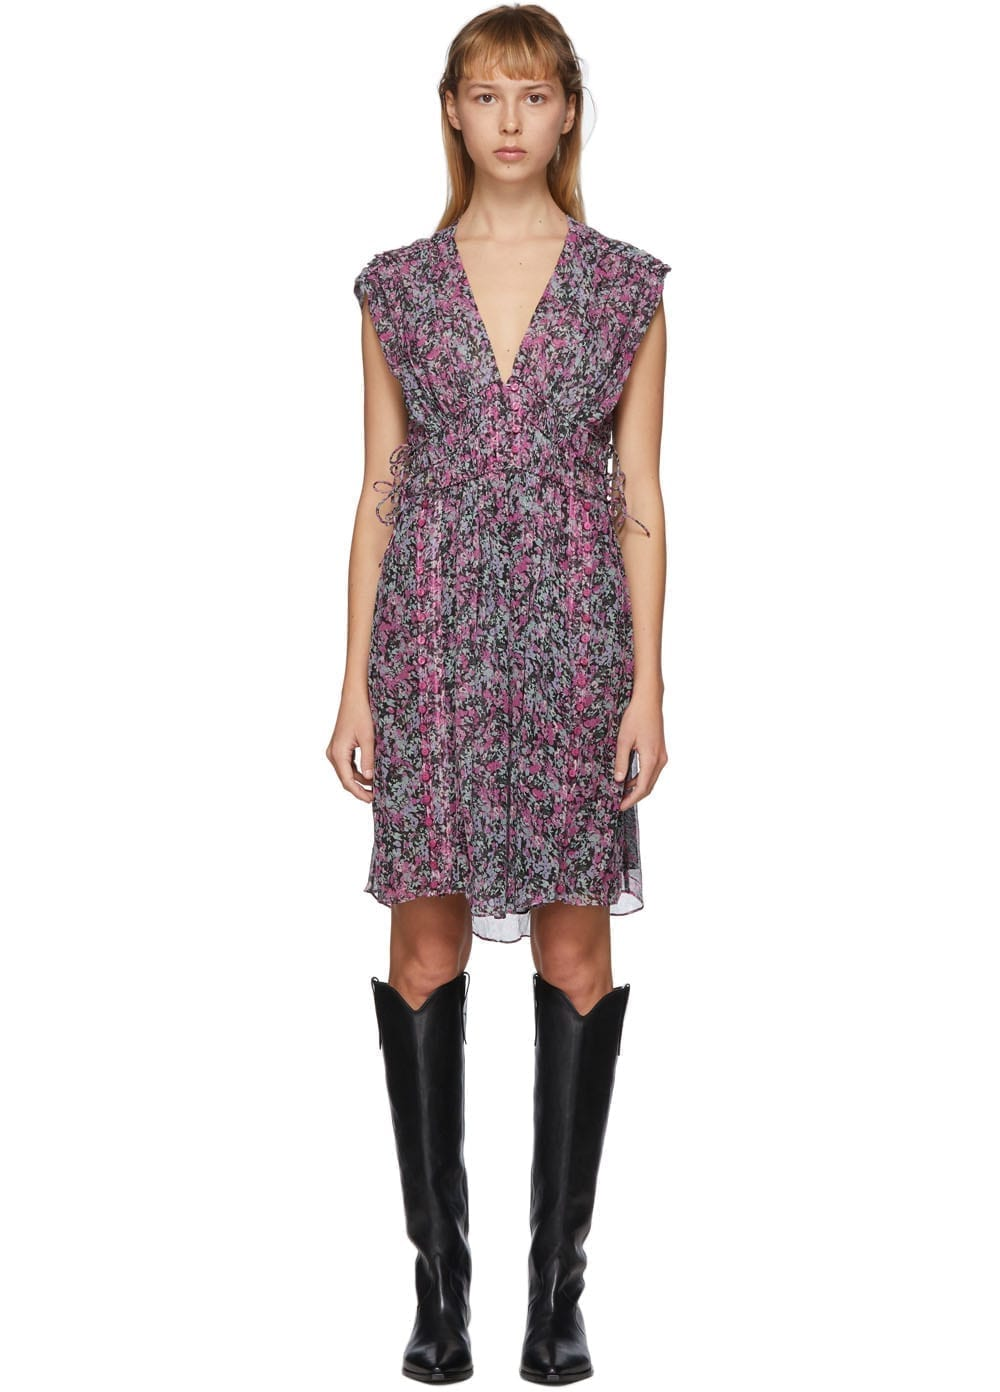 ISABEL MARANT Black & Multicolor Oaxoli Dress